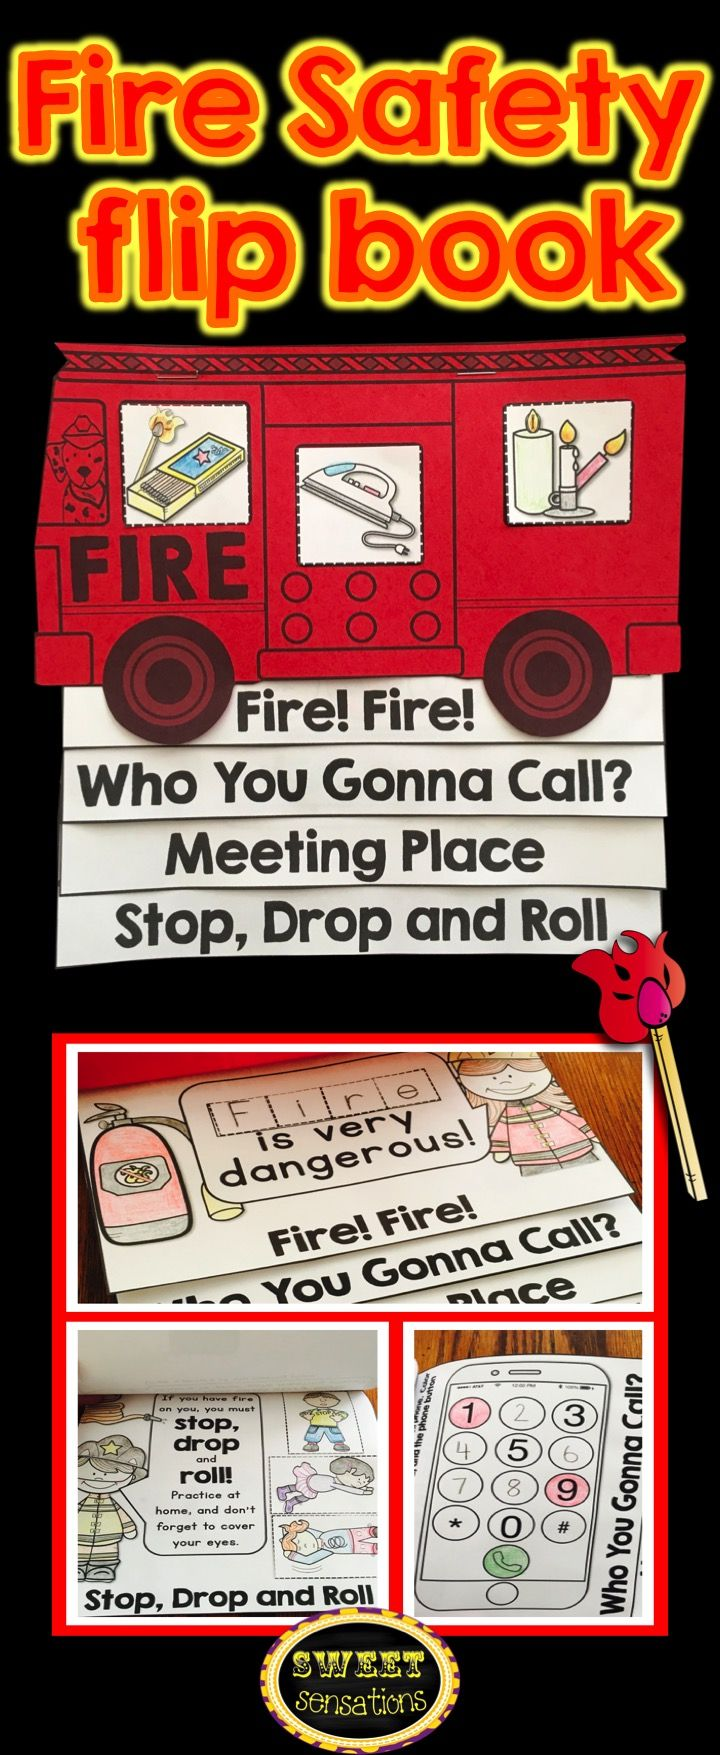 Fire safety and prevention for kindergarten and first grade - students make a flip book about using the phone, knowing the meeting place and stop, drop, roll.